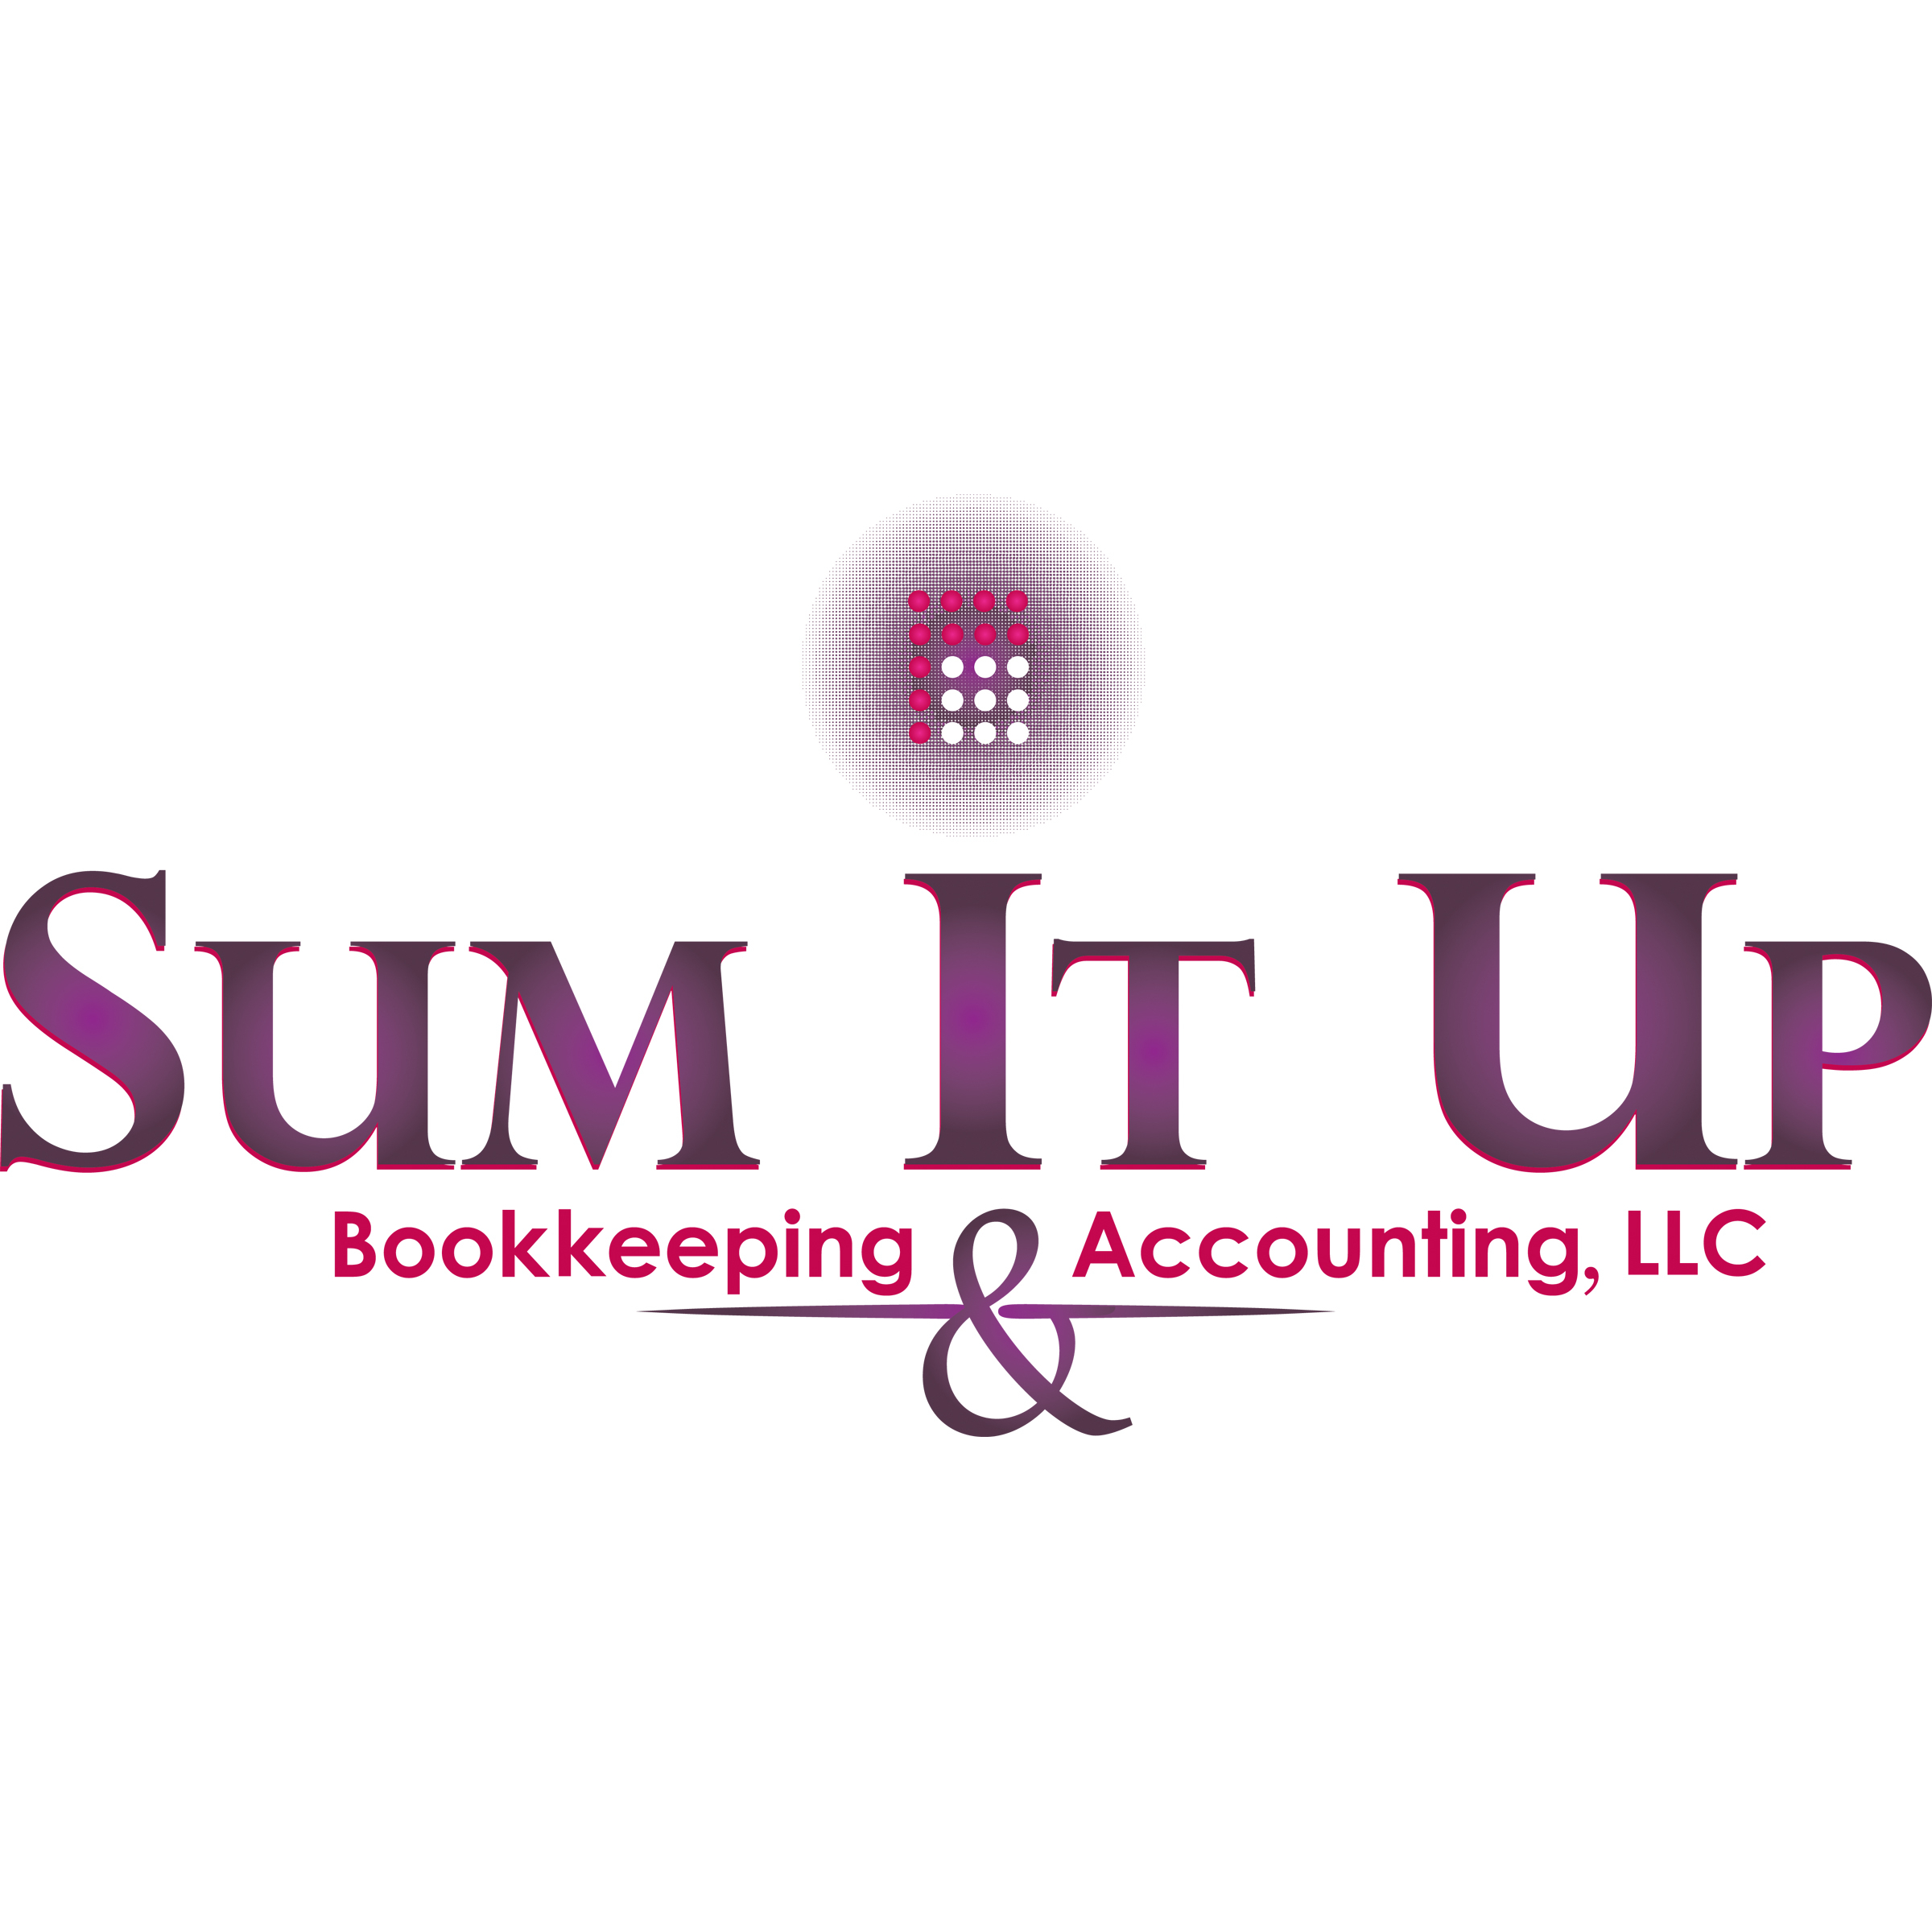 Sum It Up Bookkeeping and Accounting, LLC